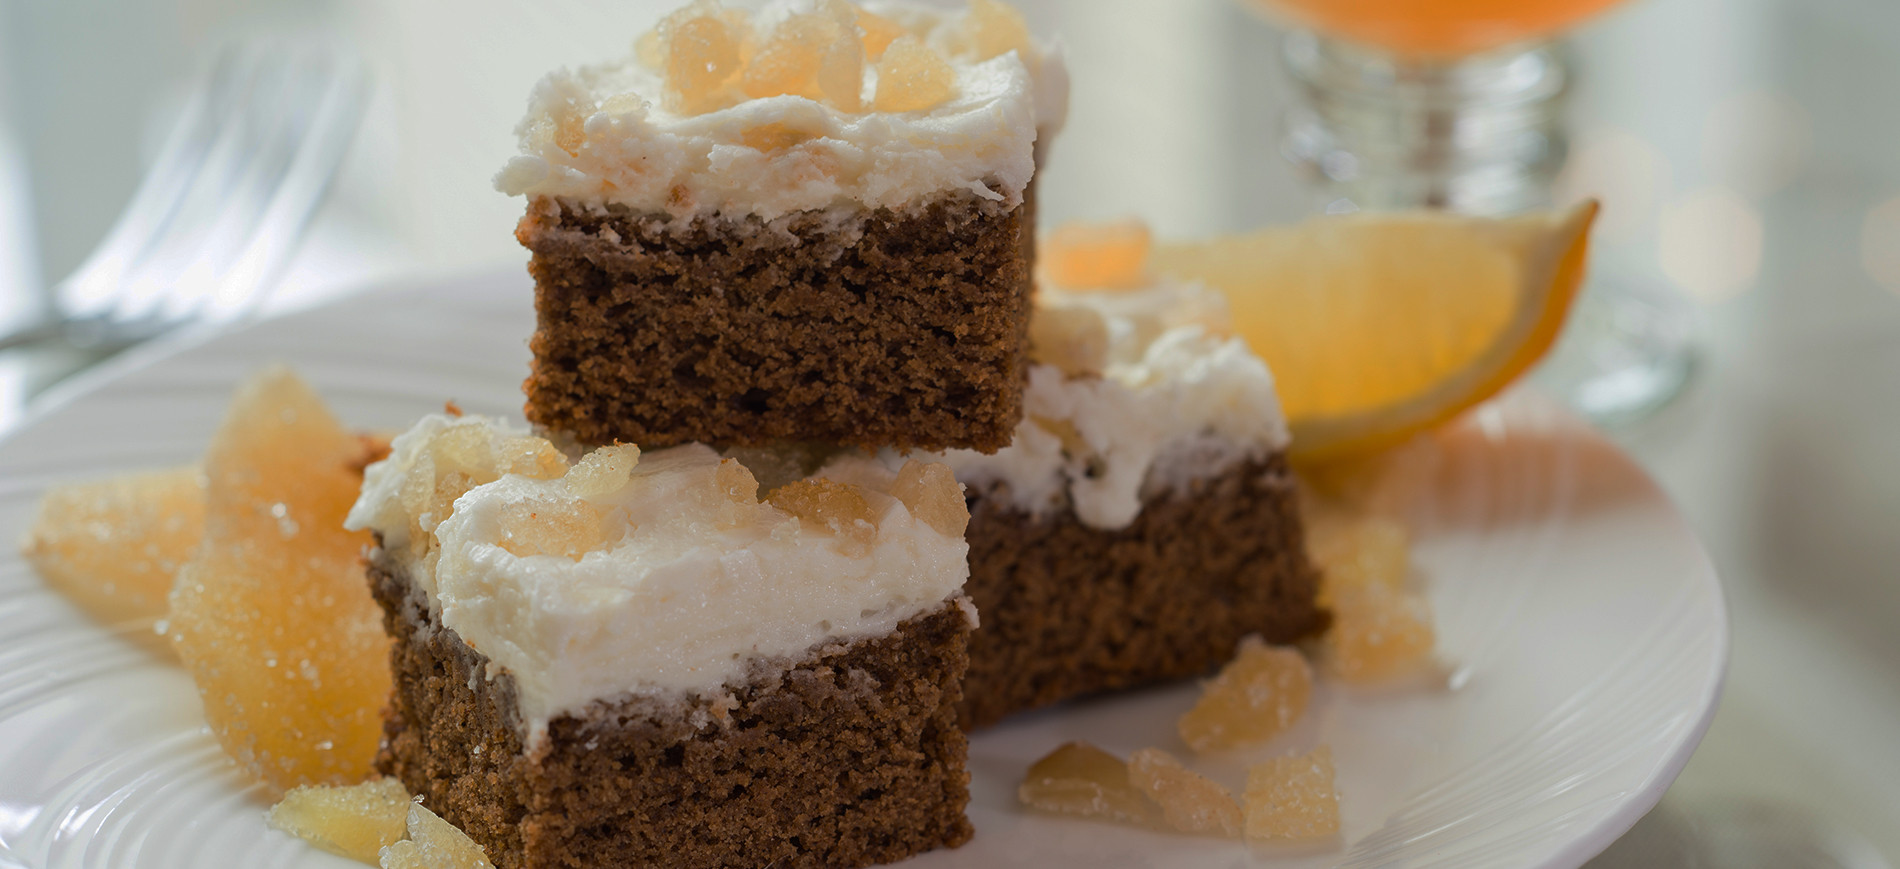 Three stacked pieces of gingerbread with lemon frosting in front of glass mug of cider